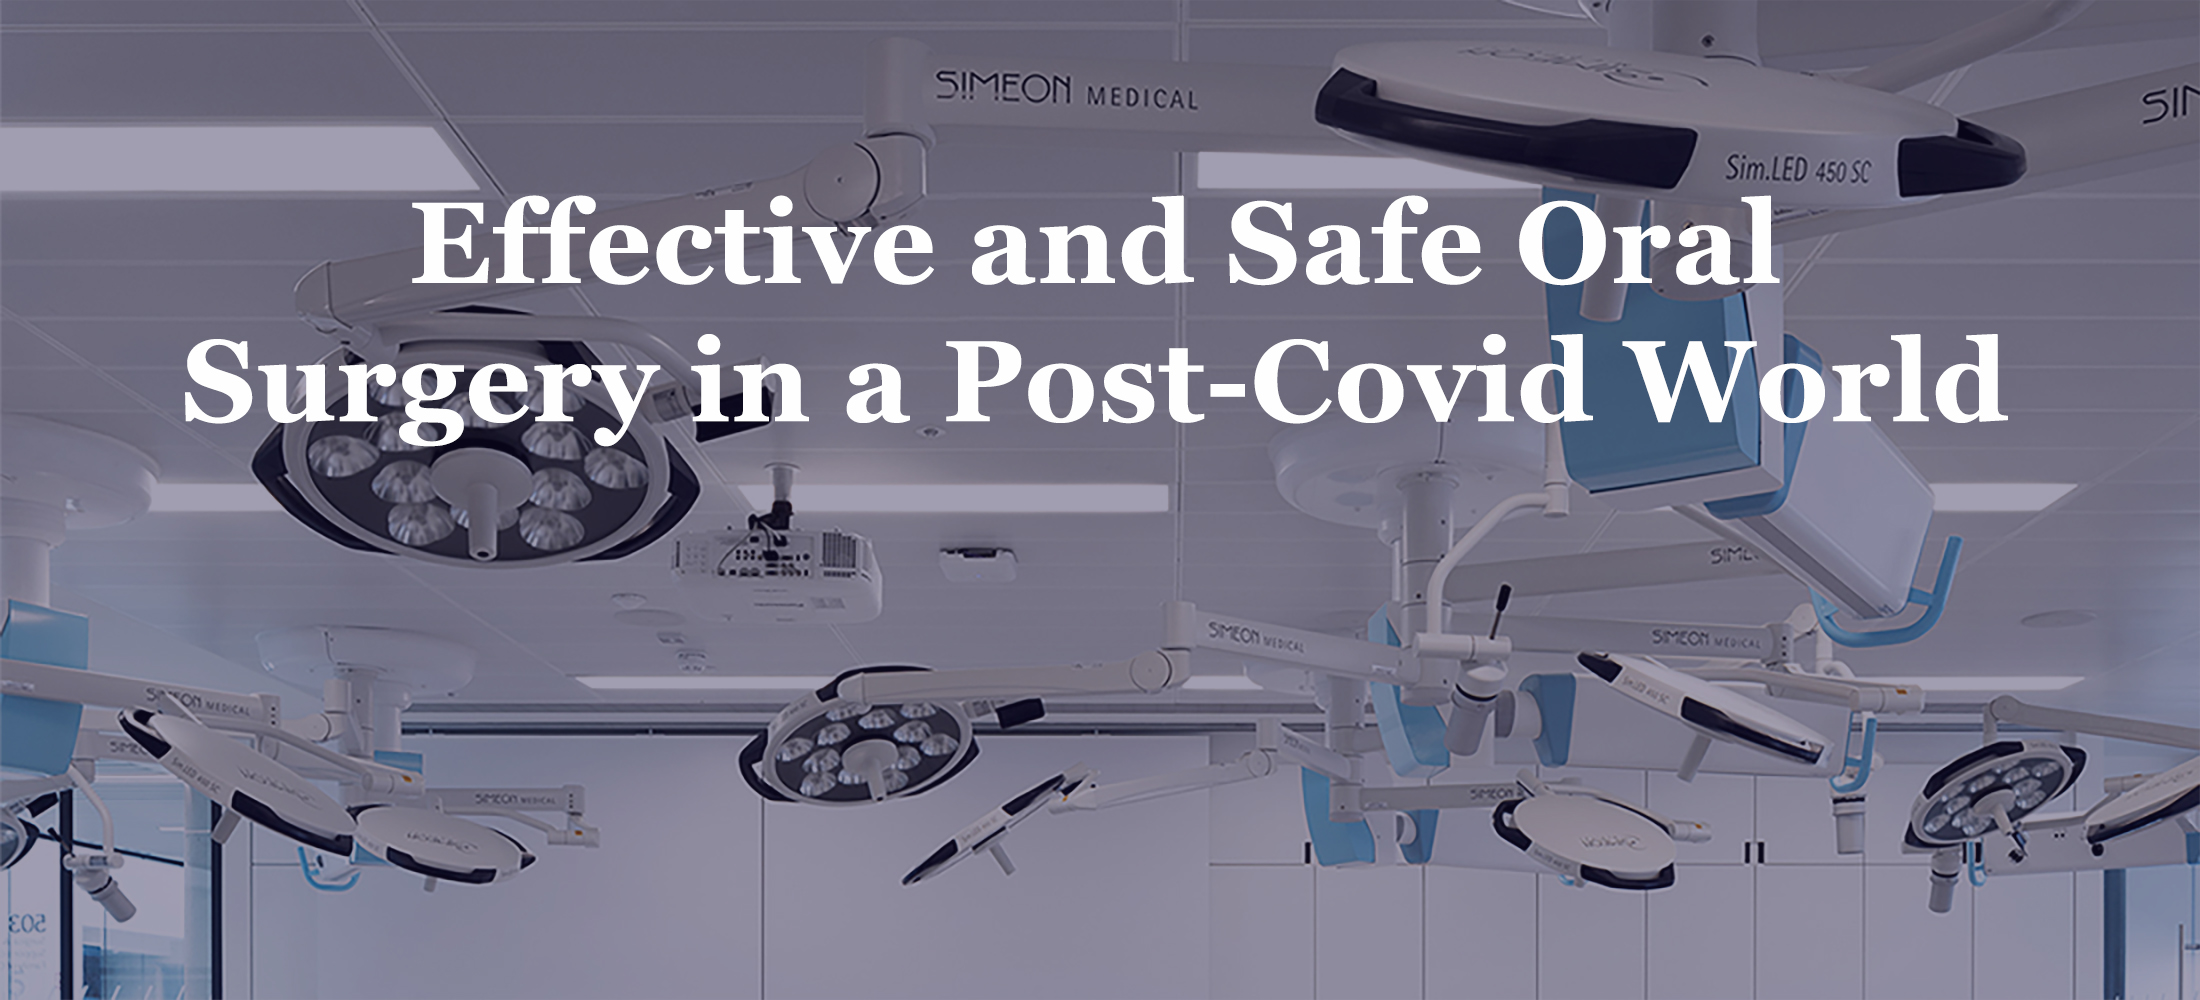 Effective and Safe Oral Surgery in a Post-Covid World